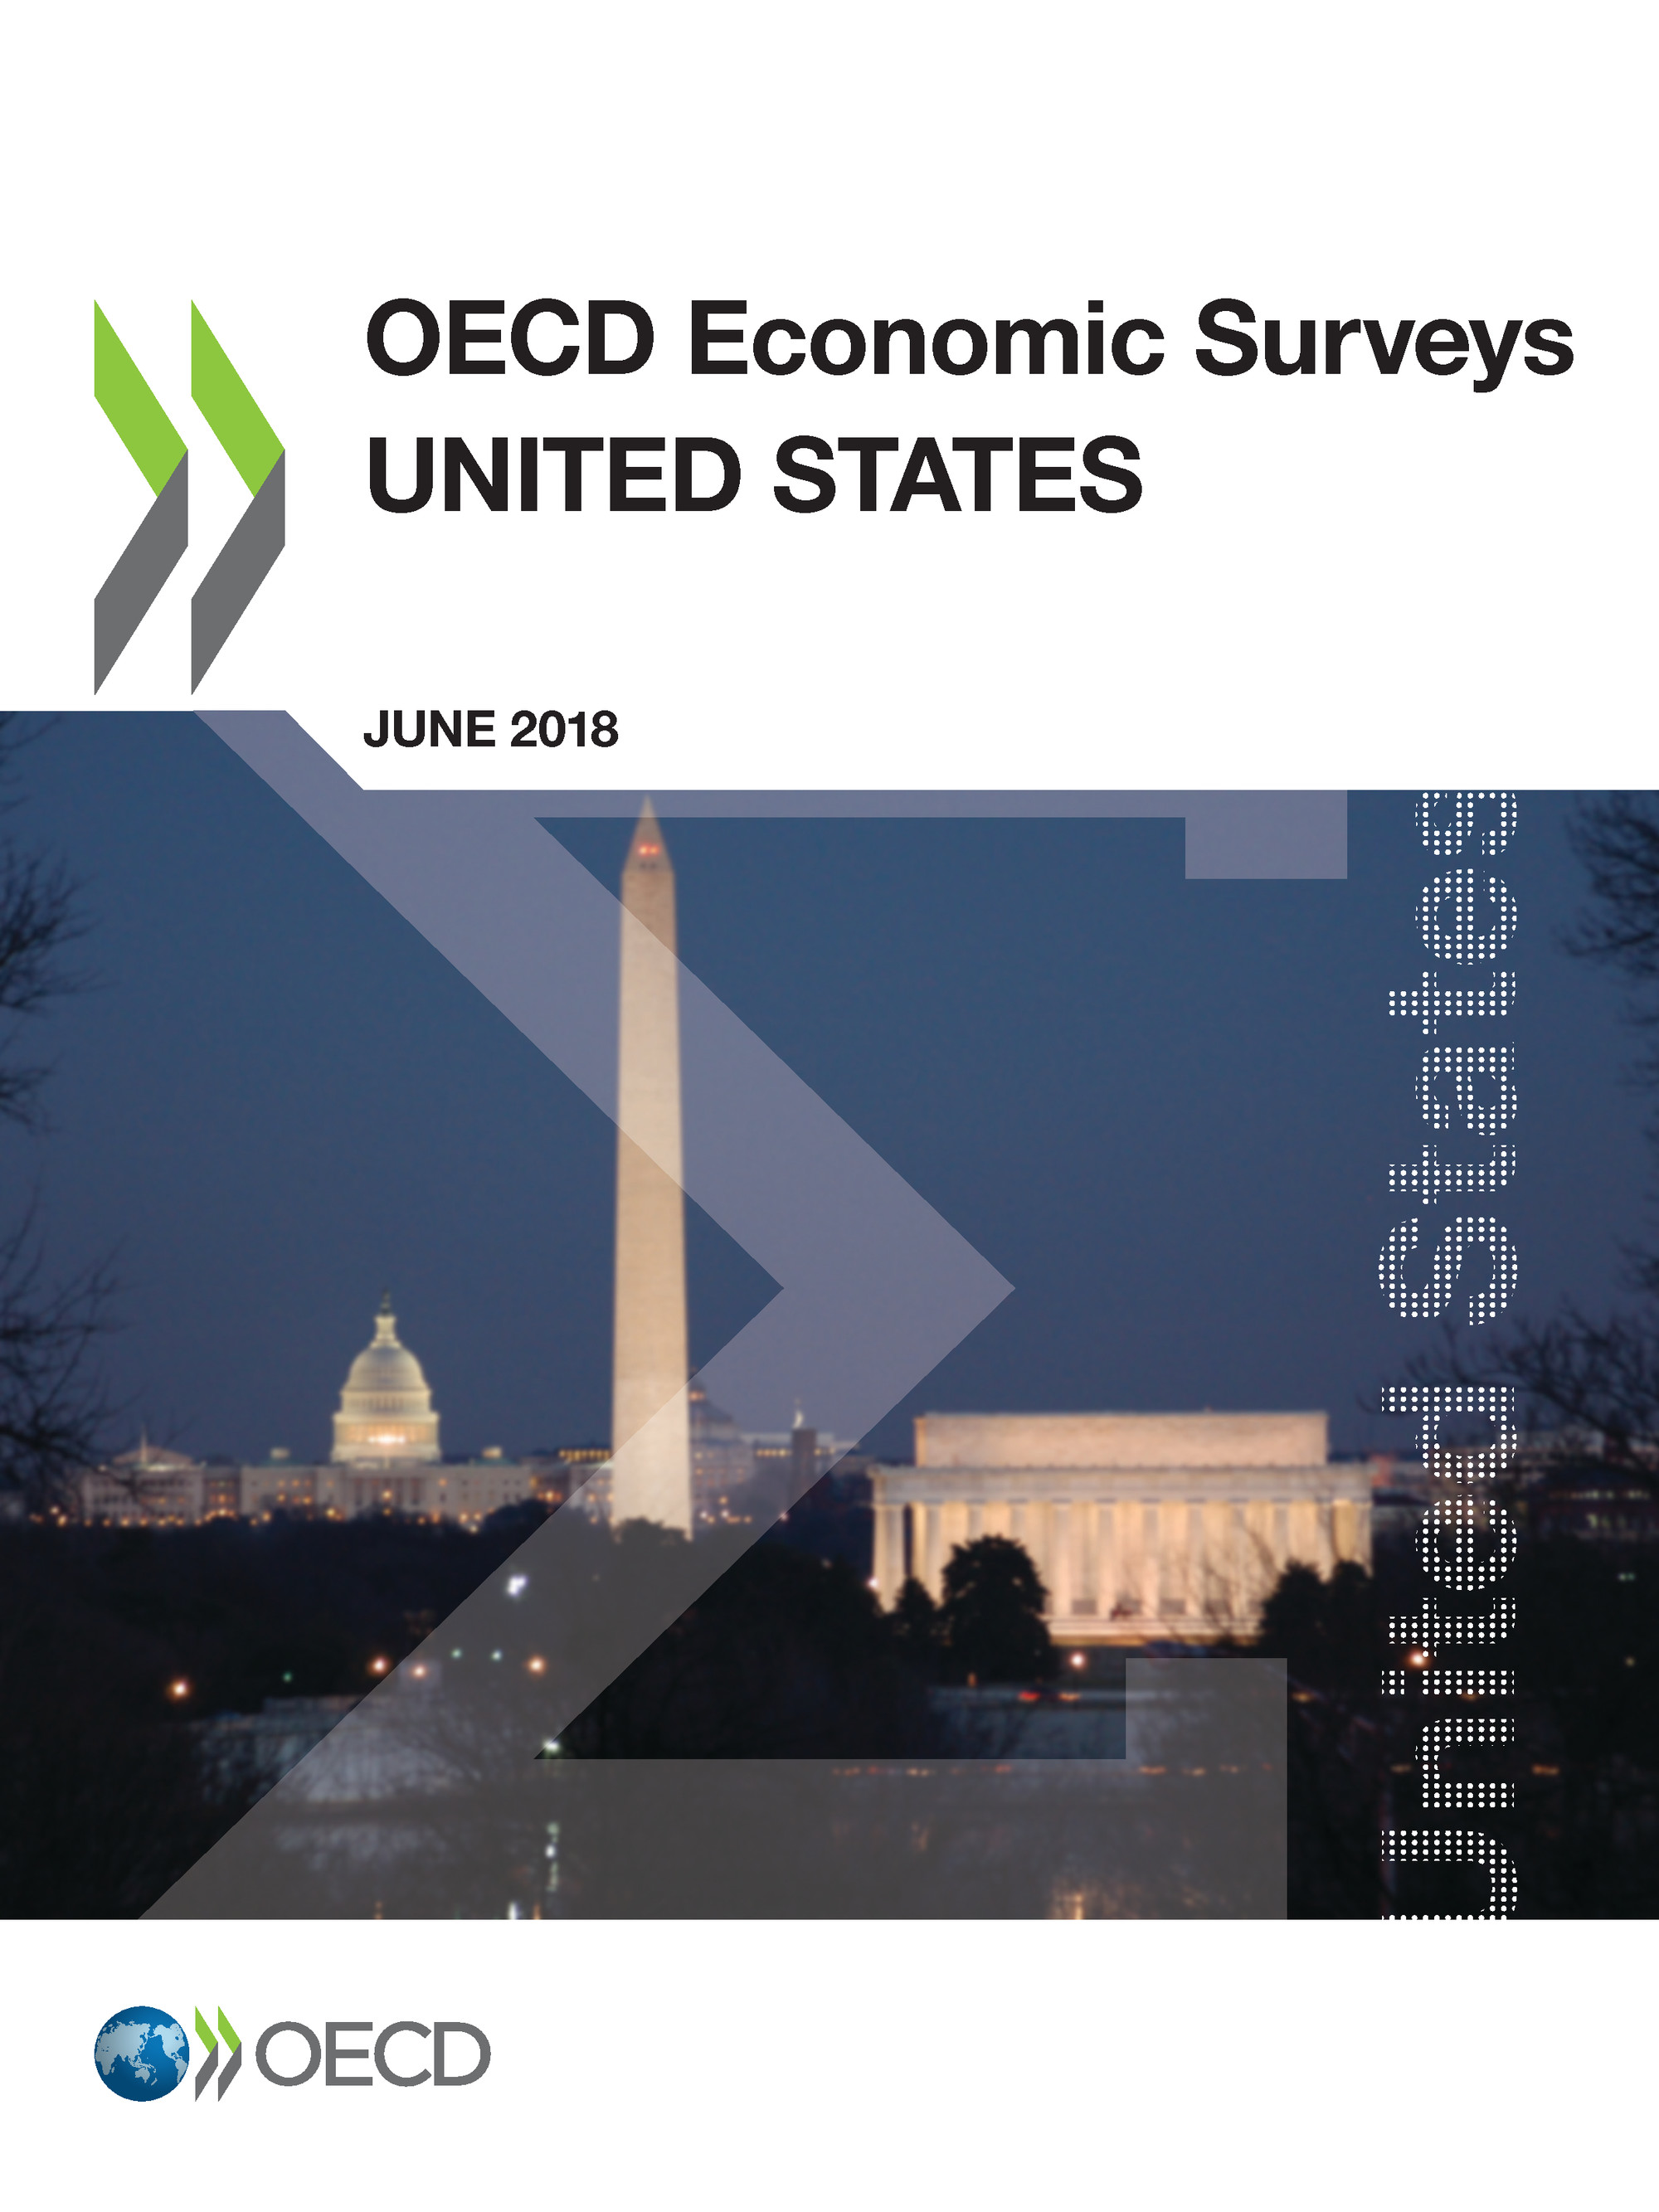 OECD Economic Surveys: United States 2018 De  Collectif - OCDE / OECD